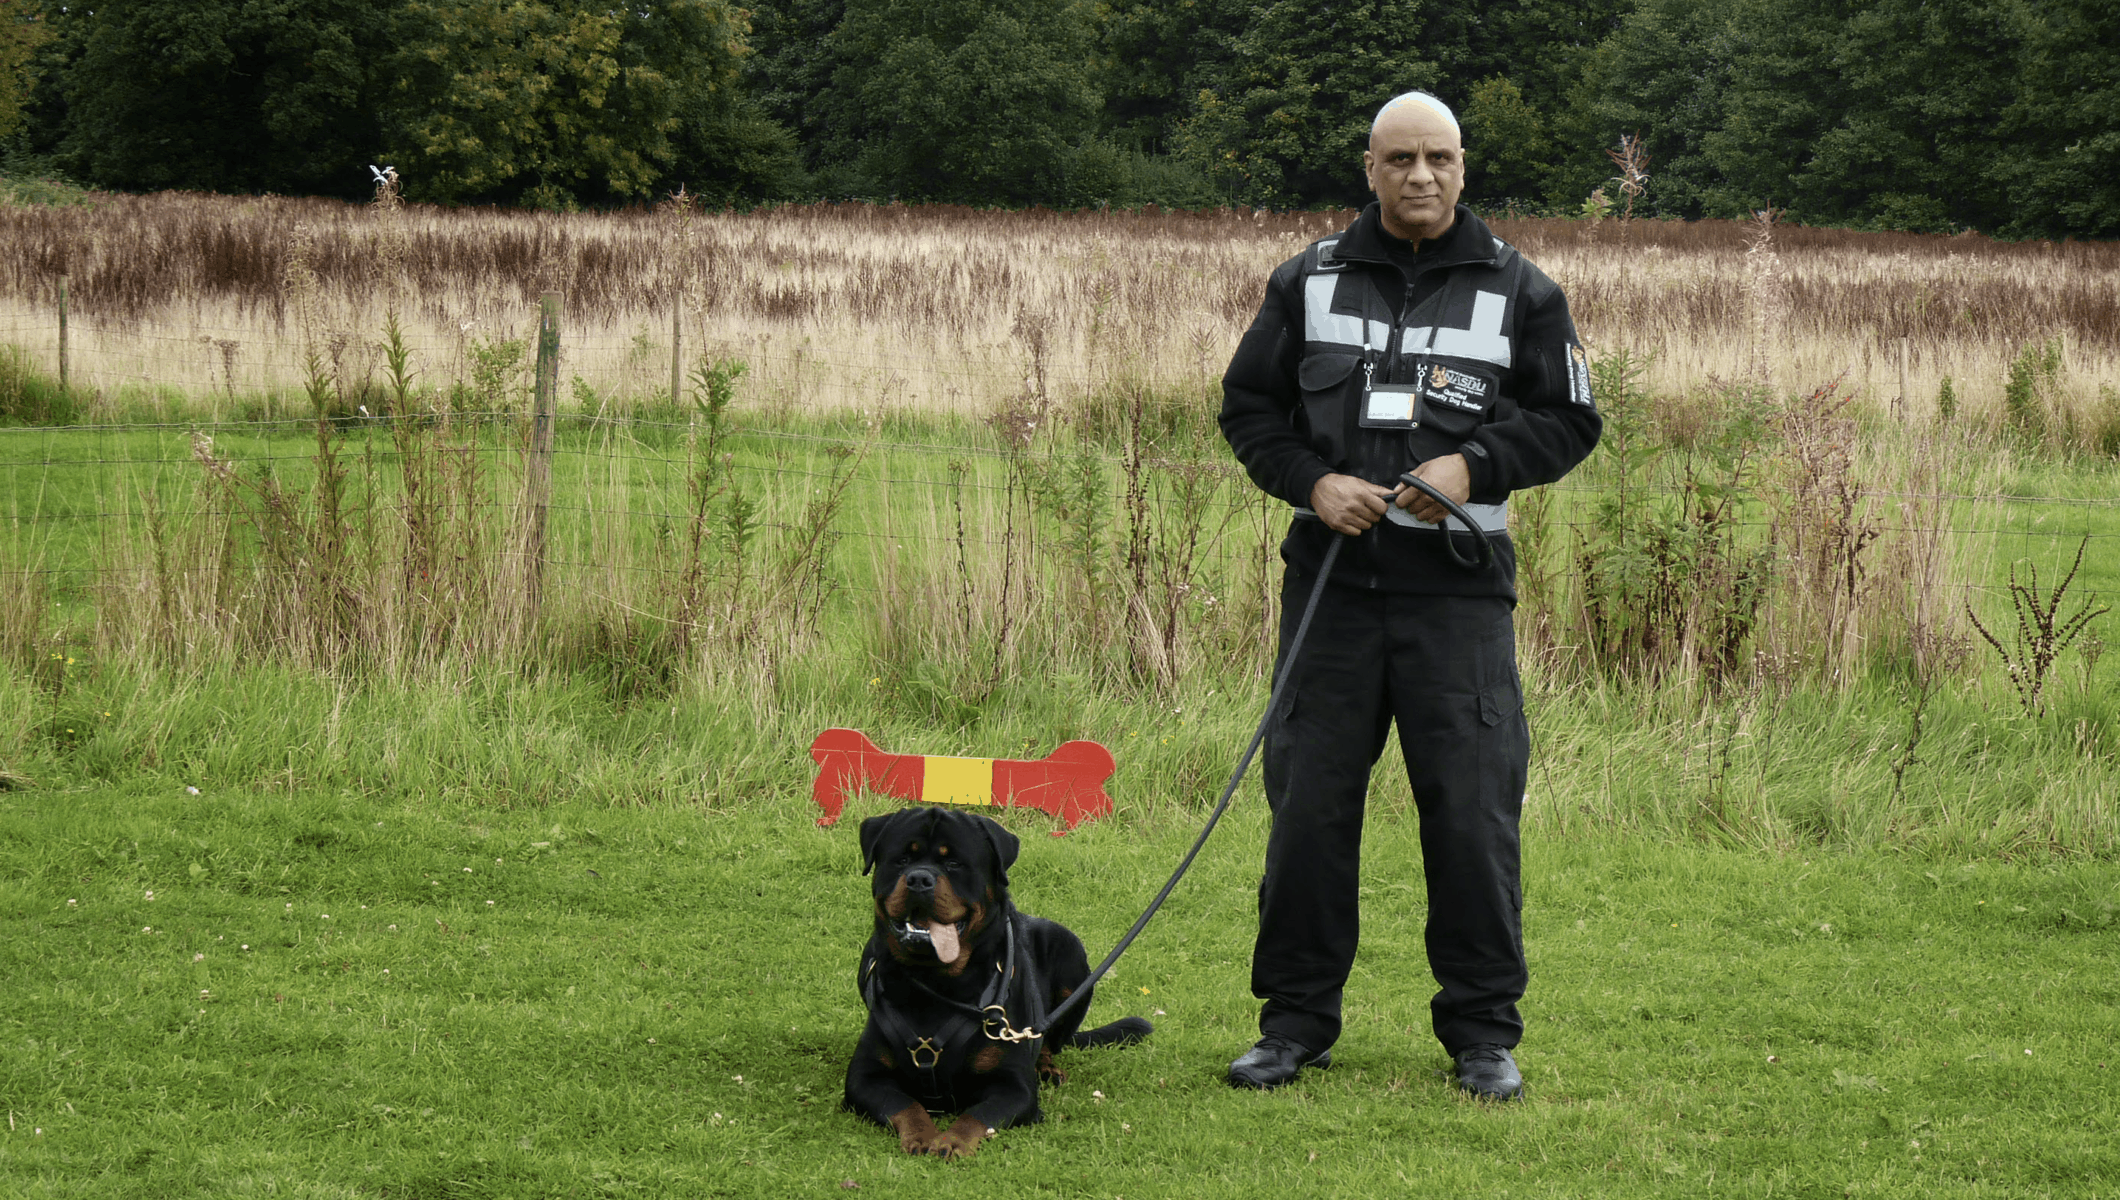 Security dogs nottingham